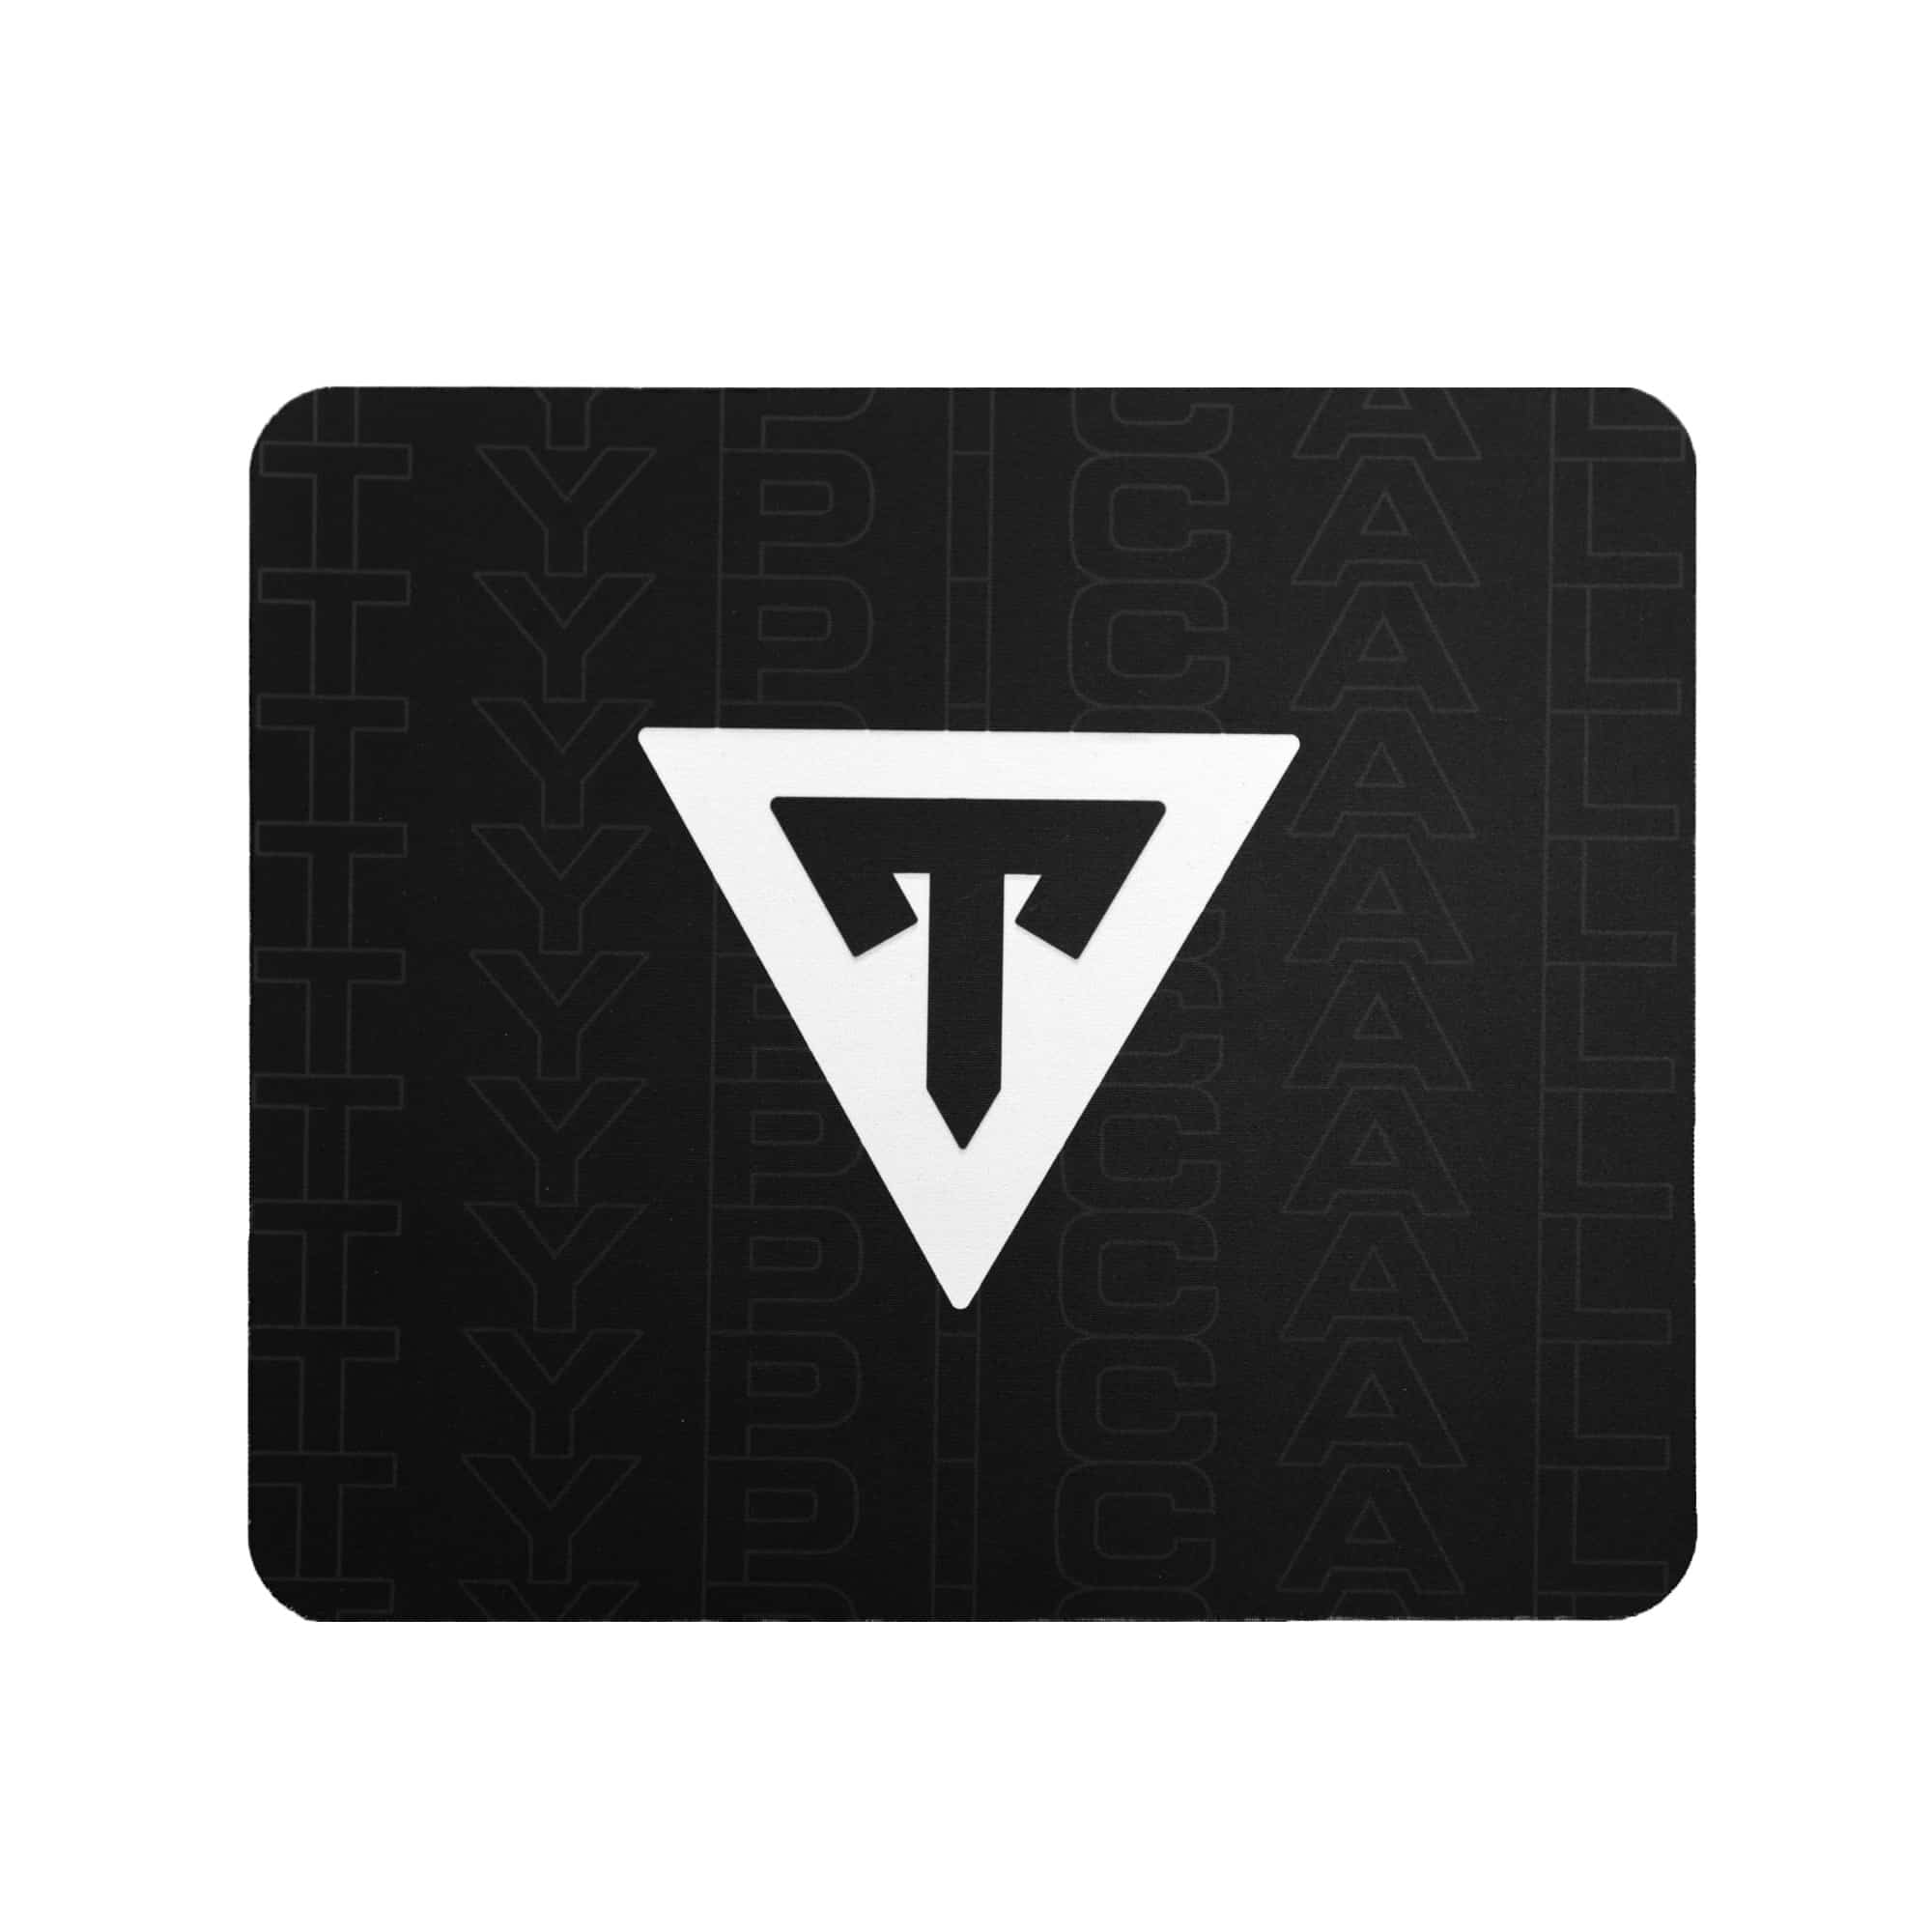 'Typical' Mouse Pad